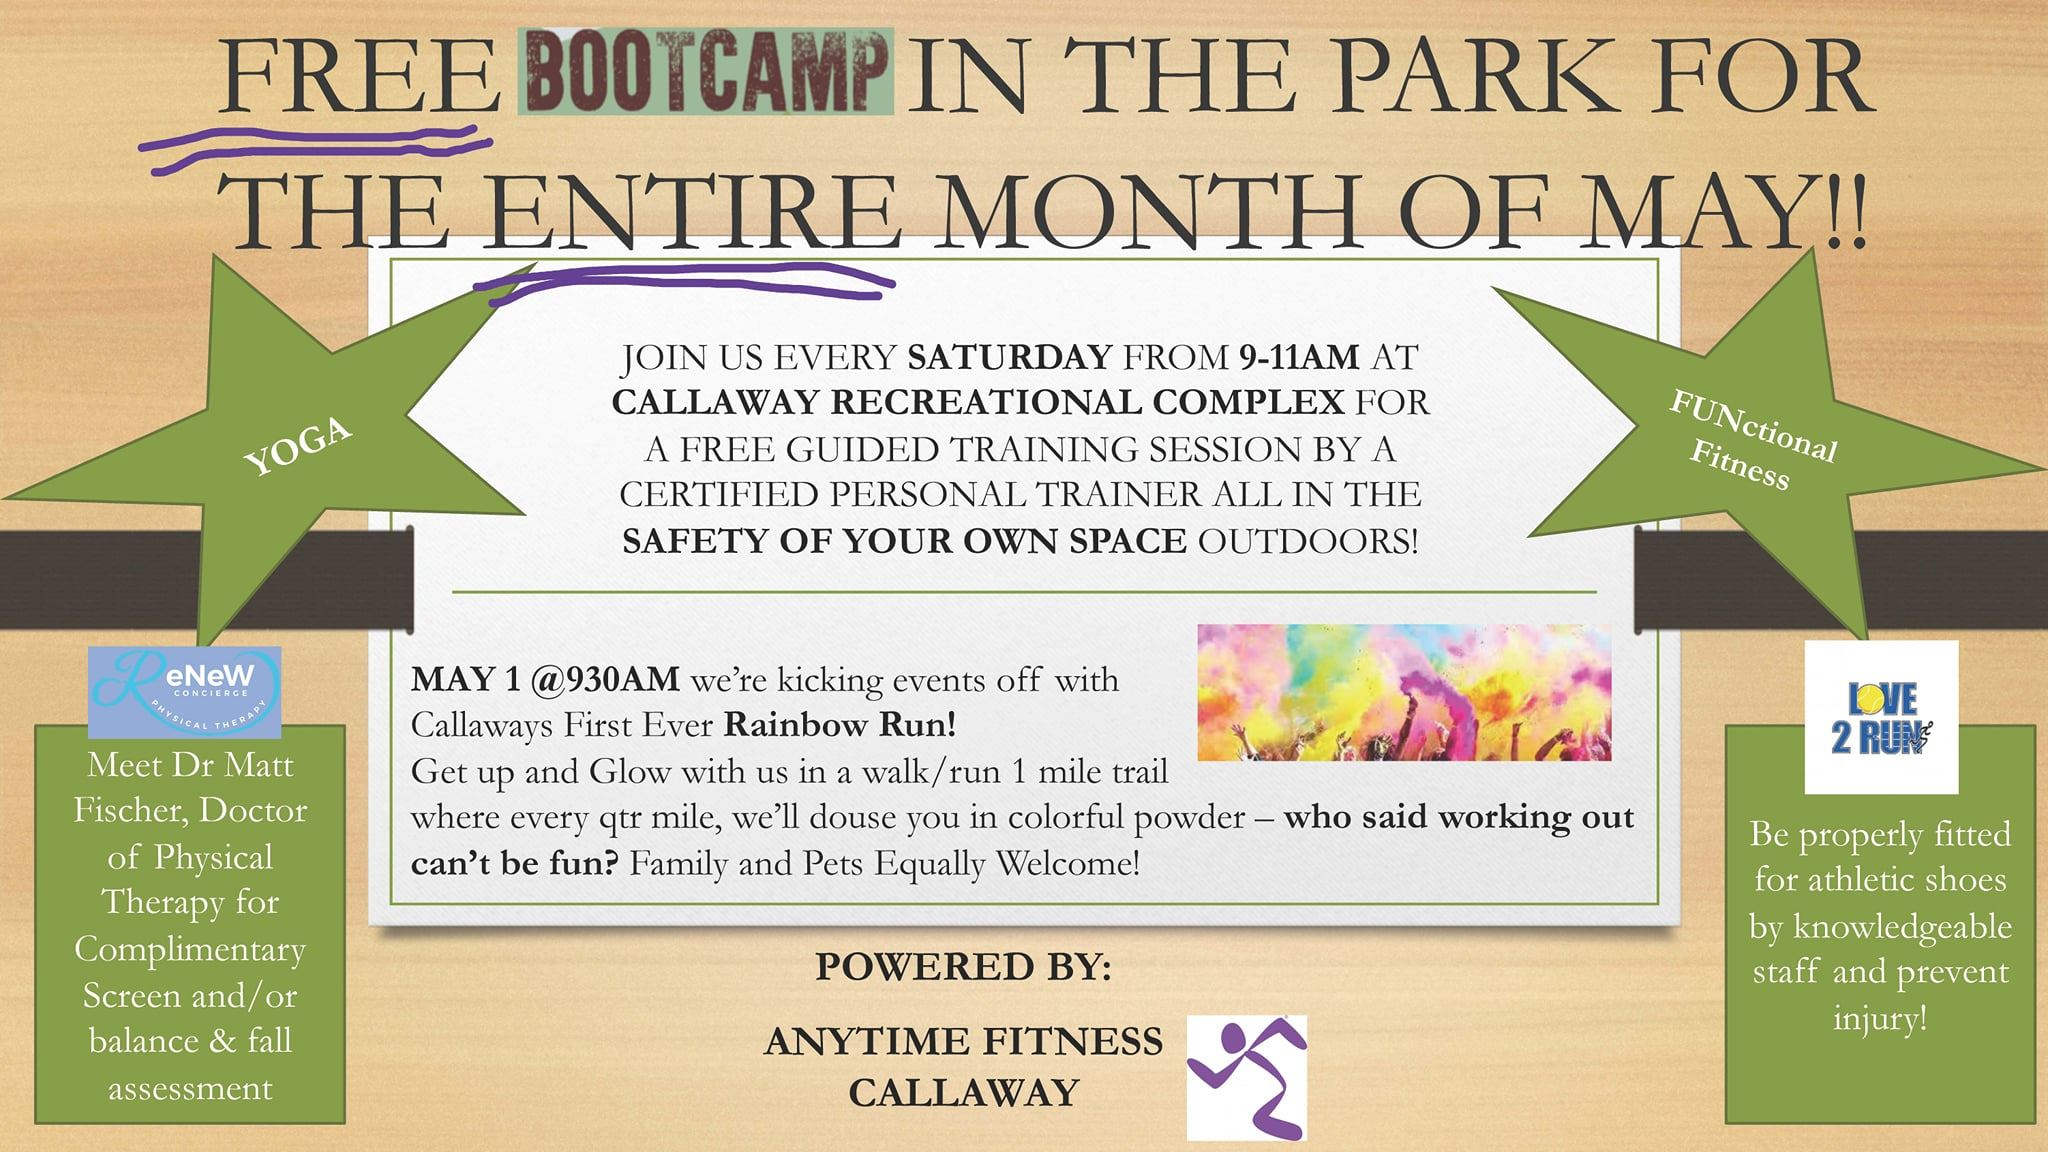 Free Bootcamp in the Park 4-21-21